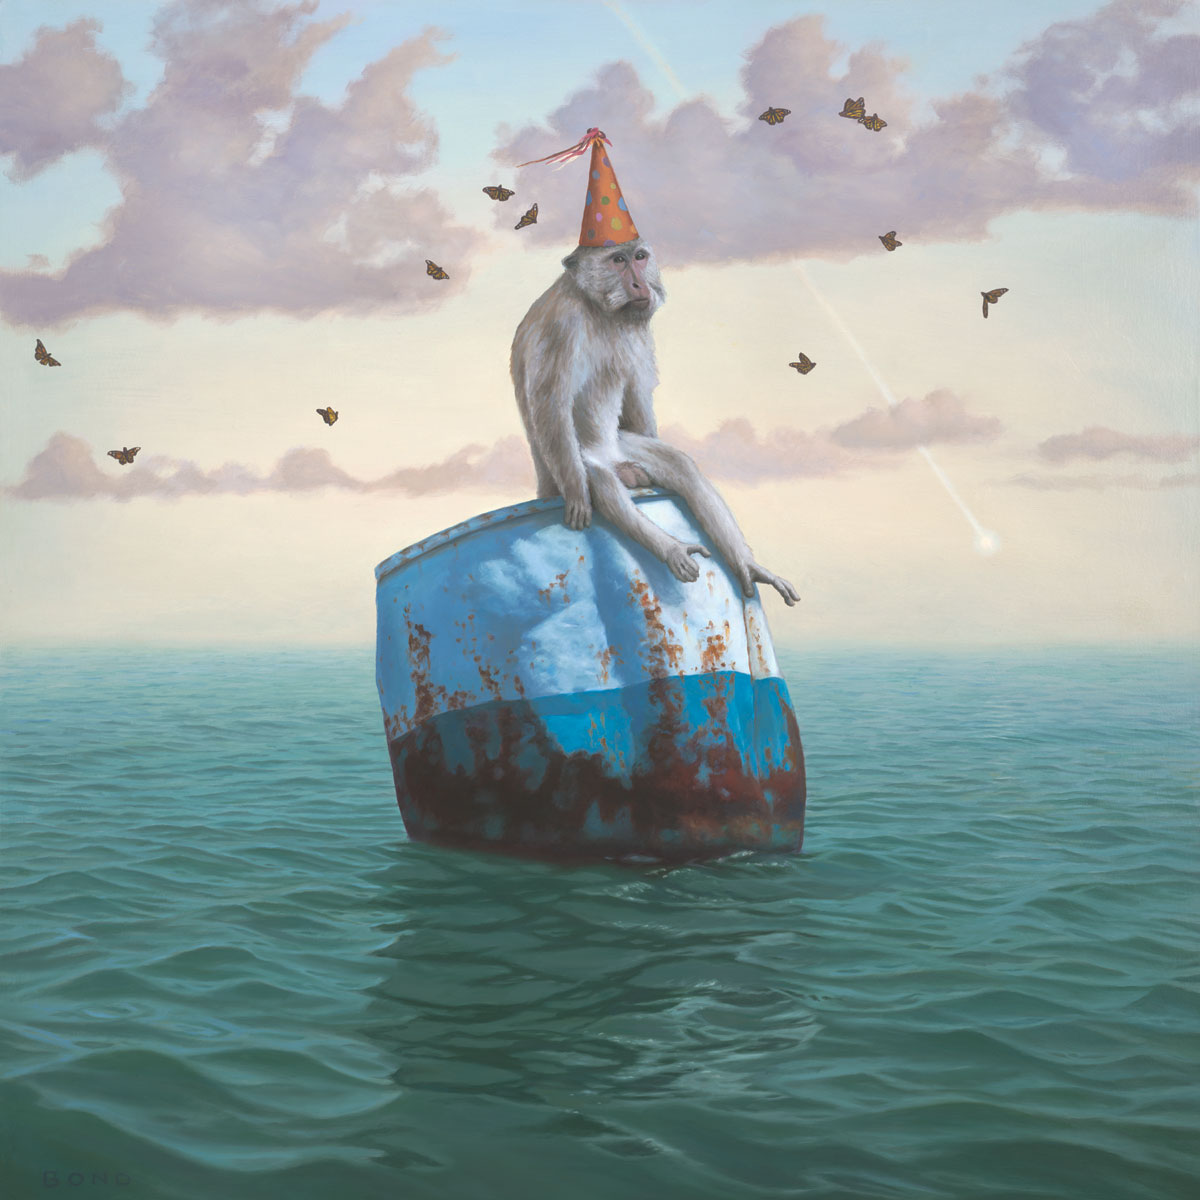 The Remarkable Circumstantial Adaptability of Man, painting of a monkey wearing a party hat floating on a barrel in the ocean,  art with long tailed macaque, art about happiness, adapt, happy, joy, positive, art with butterfly, butterflies, sky, cloud, water, ocean, waves, buoy, monkey, long-tailed macaques, art with comet meteor, omen, fate, chance, hope, party hat, birthday, float, nature, soulful uplifting inspirational art, soul stirring illusion art, romantic art,  surrealism, surreal art, dreamlike imagery, fanciful art, fantasy art, dreamscape visual, metaphysical art, spiritual painting, metaphysical painting, spiritual art, whimsical art, whimsy art, dream art, fantastic realism art, limited edition giclee, signed art print, fine art reproduction, original magic realism oil painting by Paul Bond